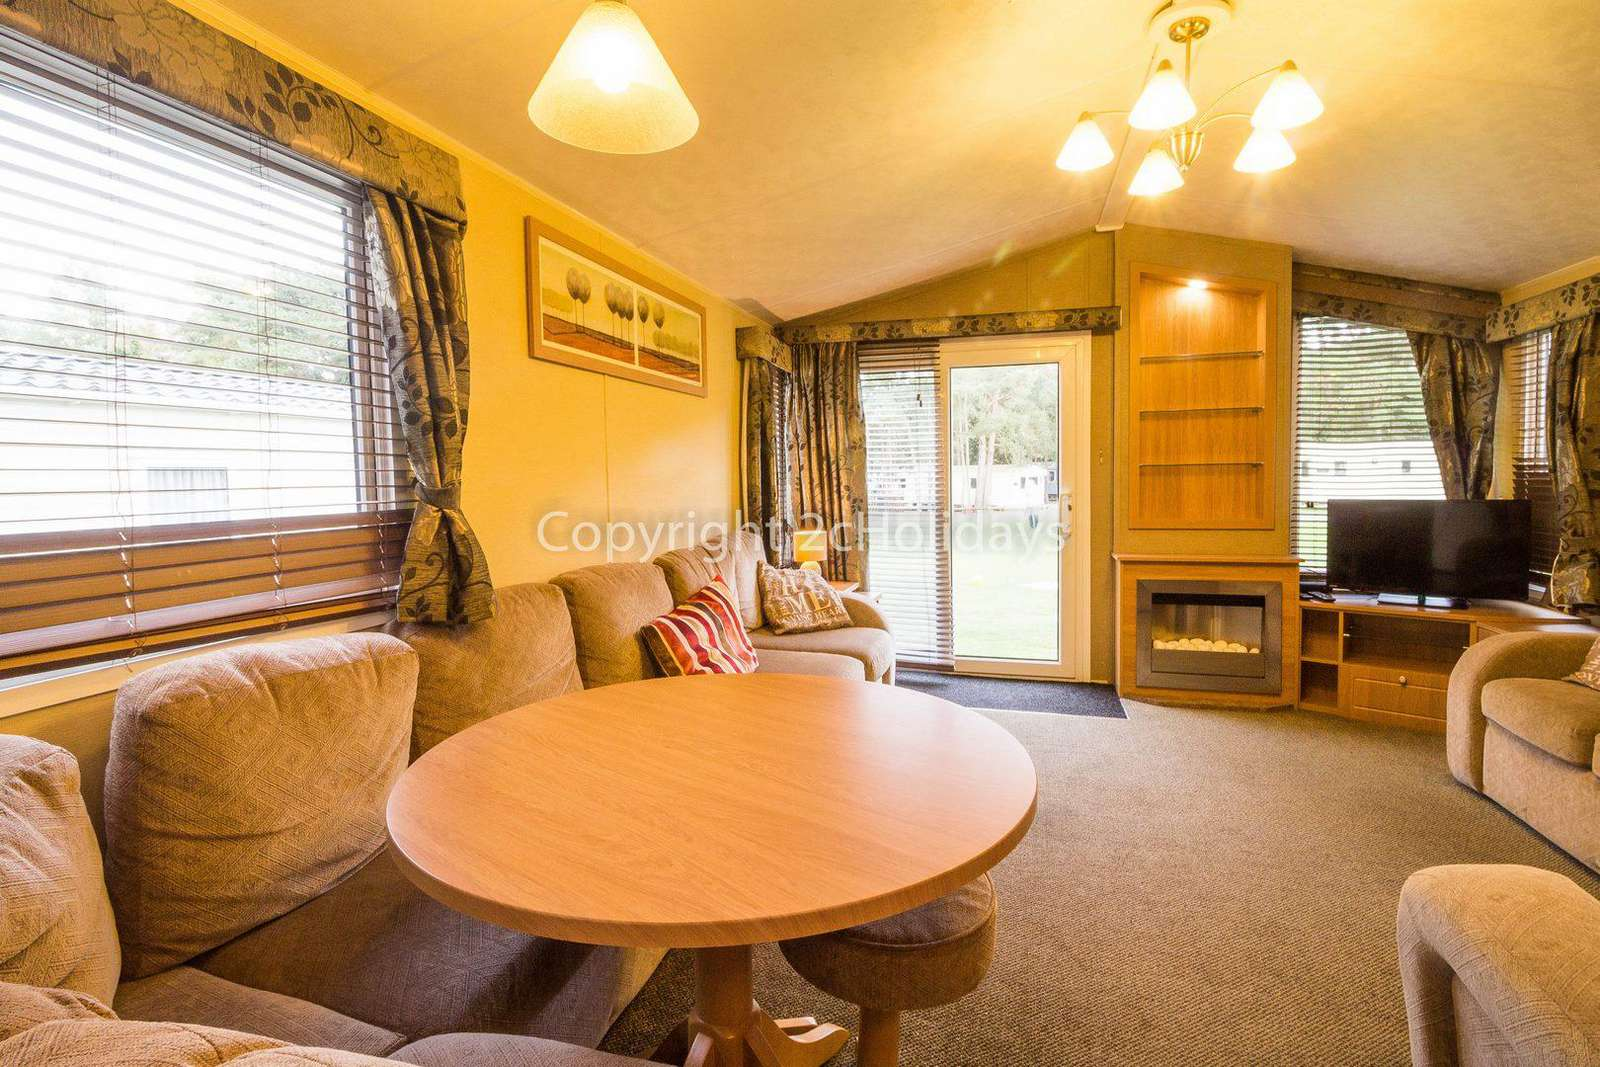 Don't forget to download your loyalty card after staying in this lodge for hire.